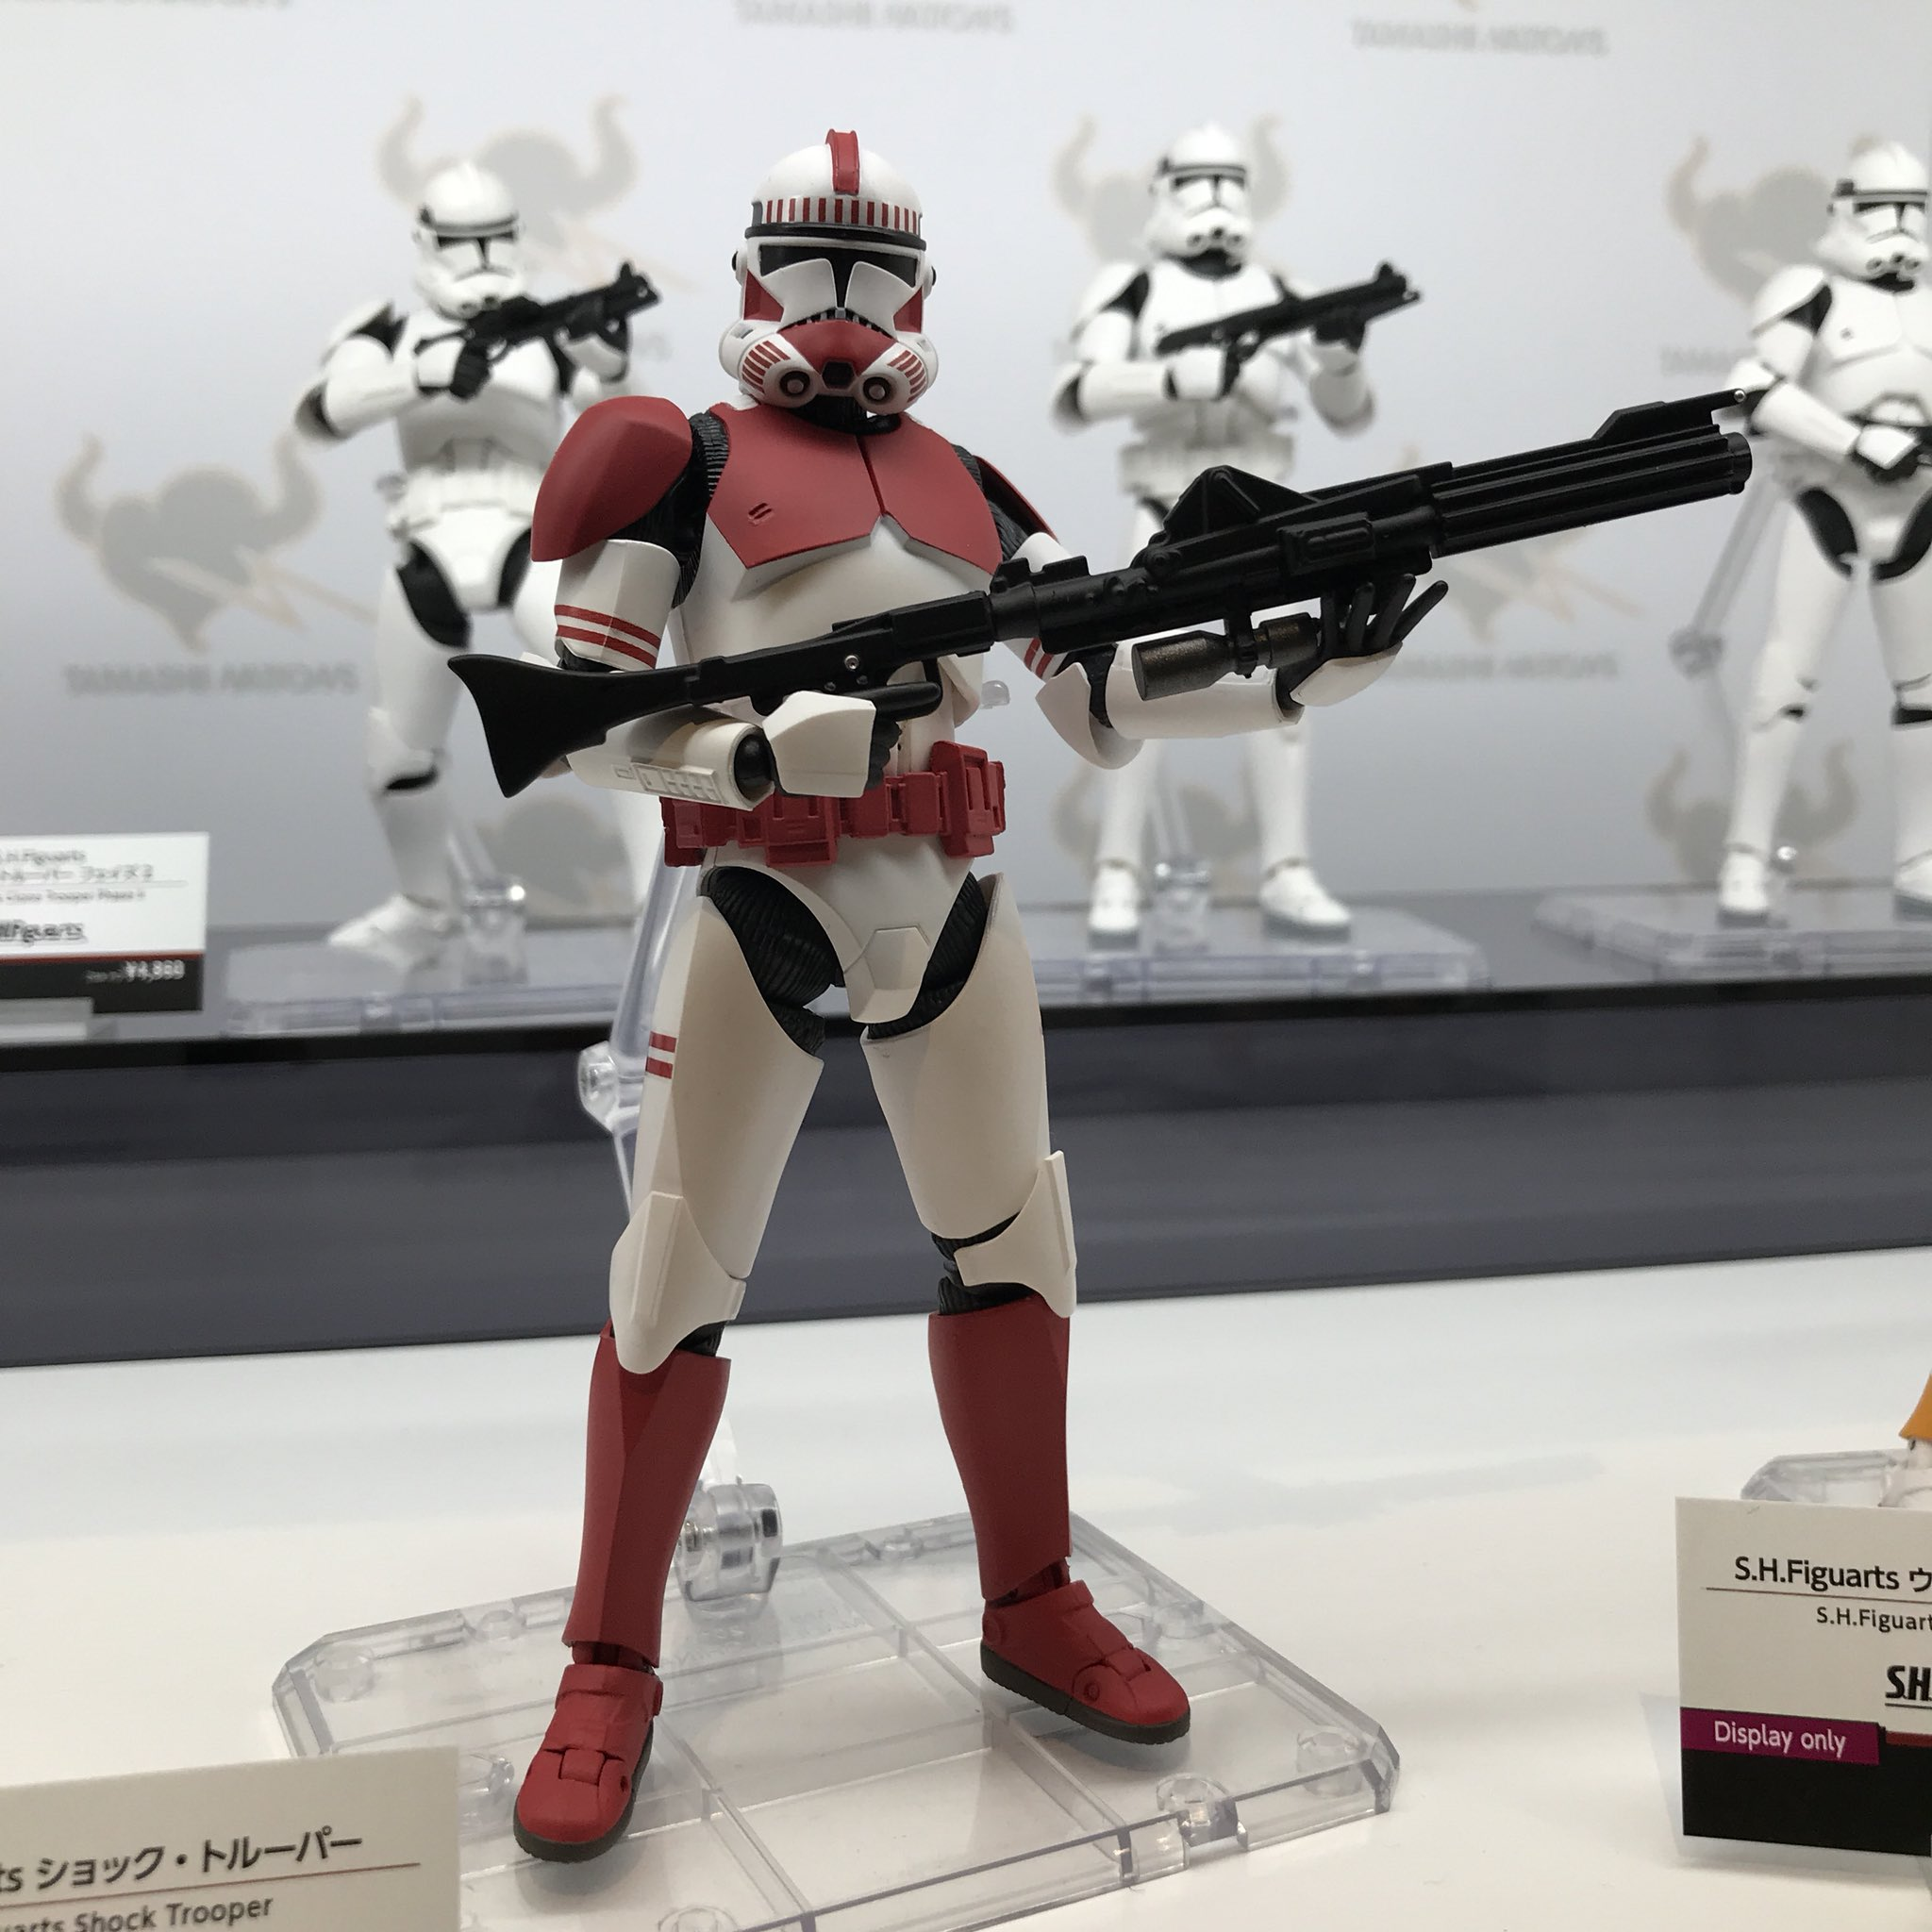 Star-Wars-SH-Figuarts-Shock-Trooper-001.jpg